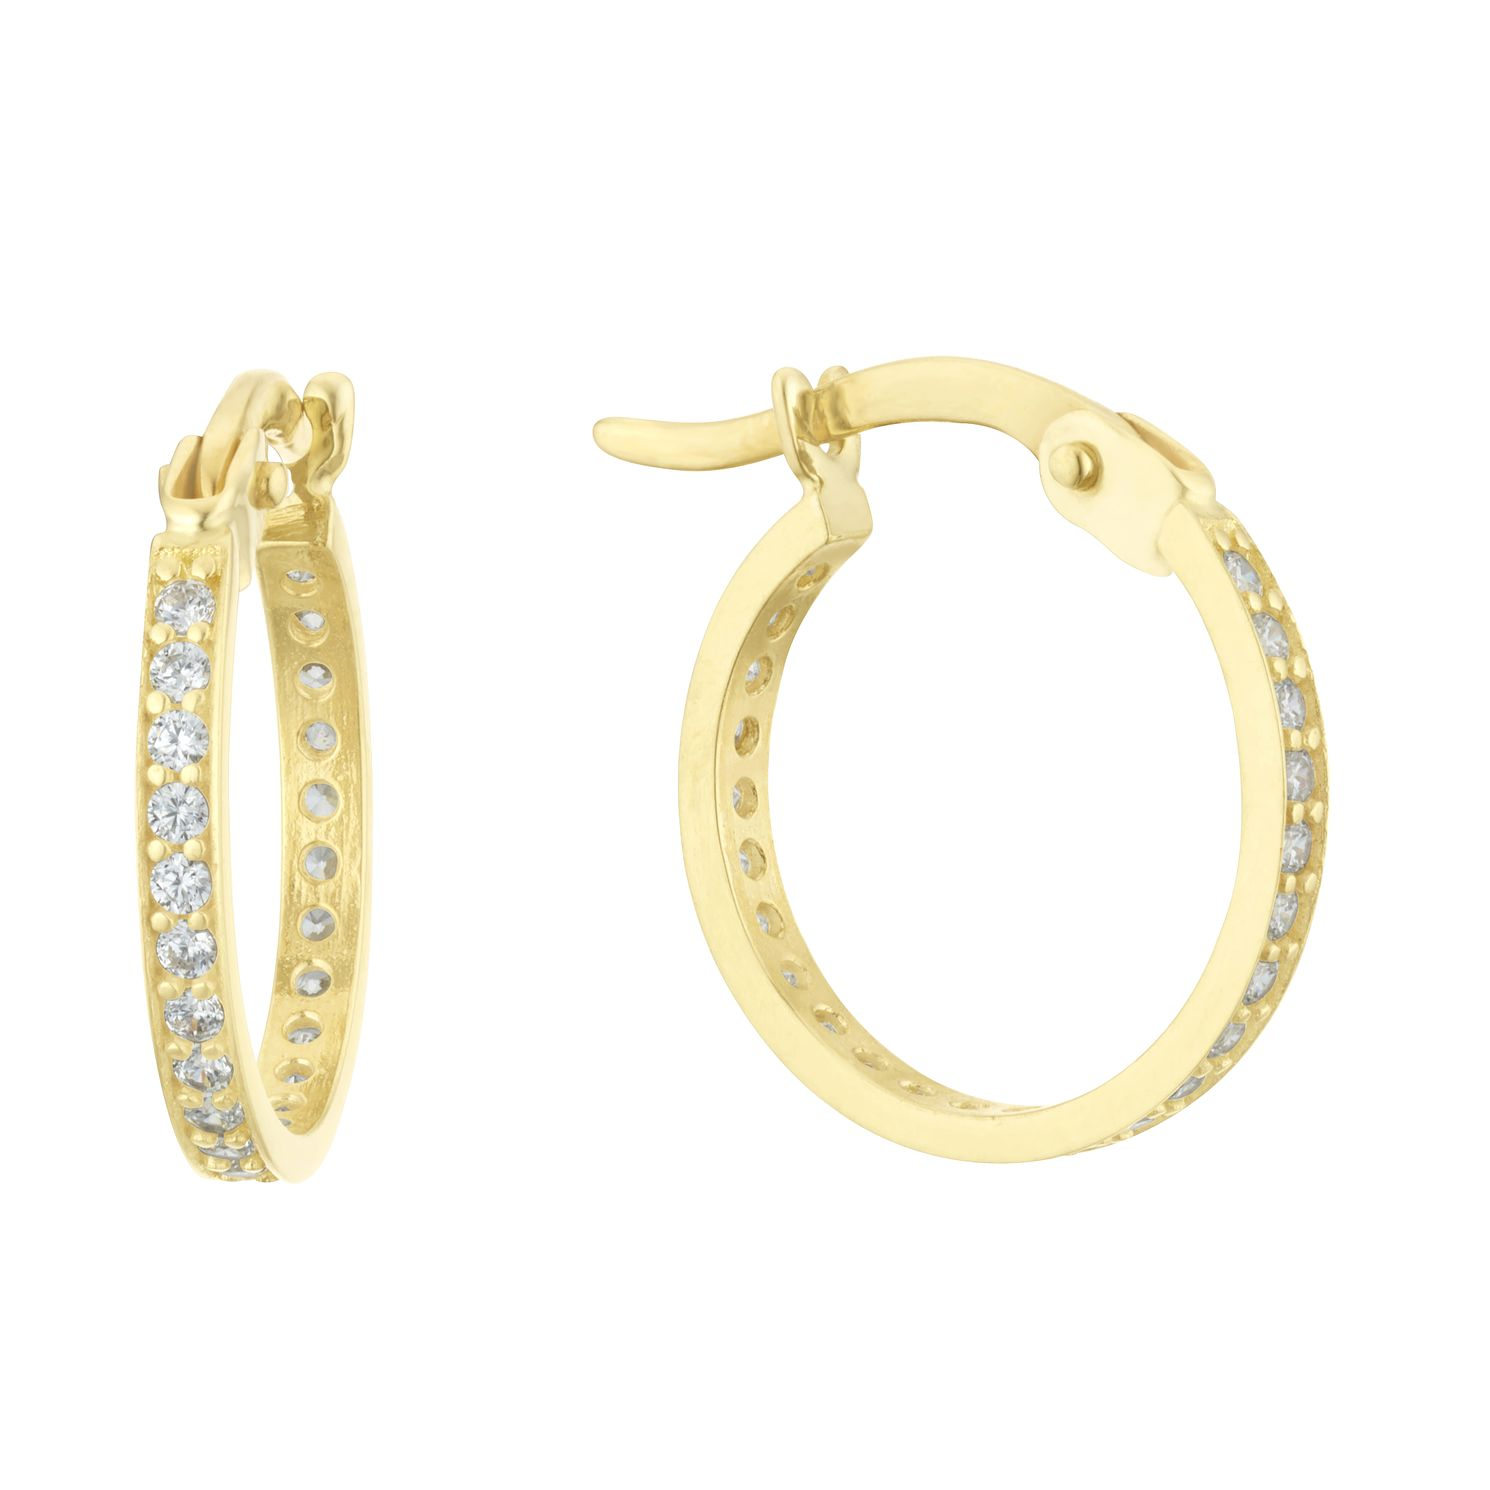 9ct Yellow Gold Cubic Zirconia Creole Hoop Earrings - Product number 3152812